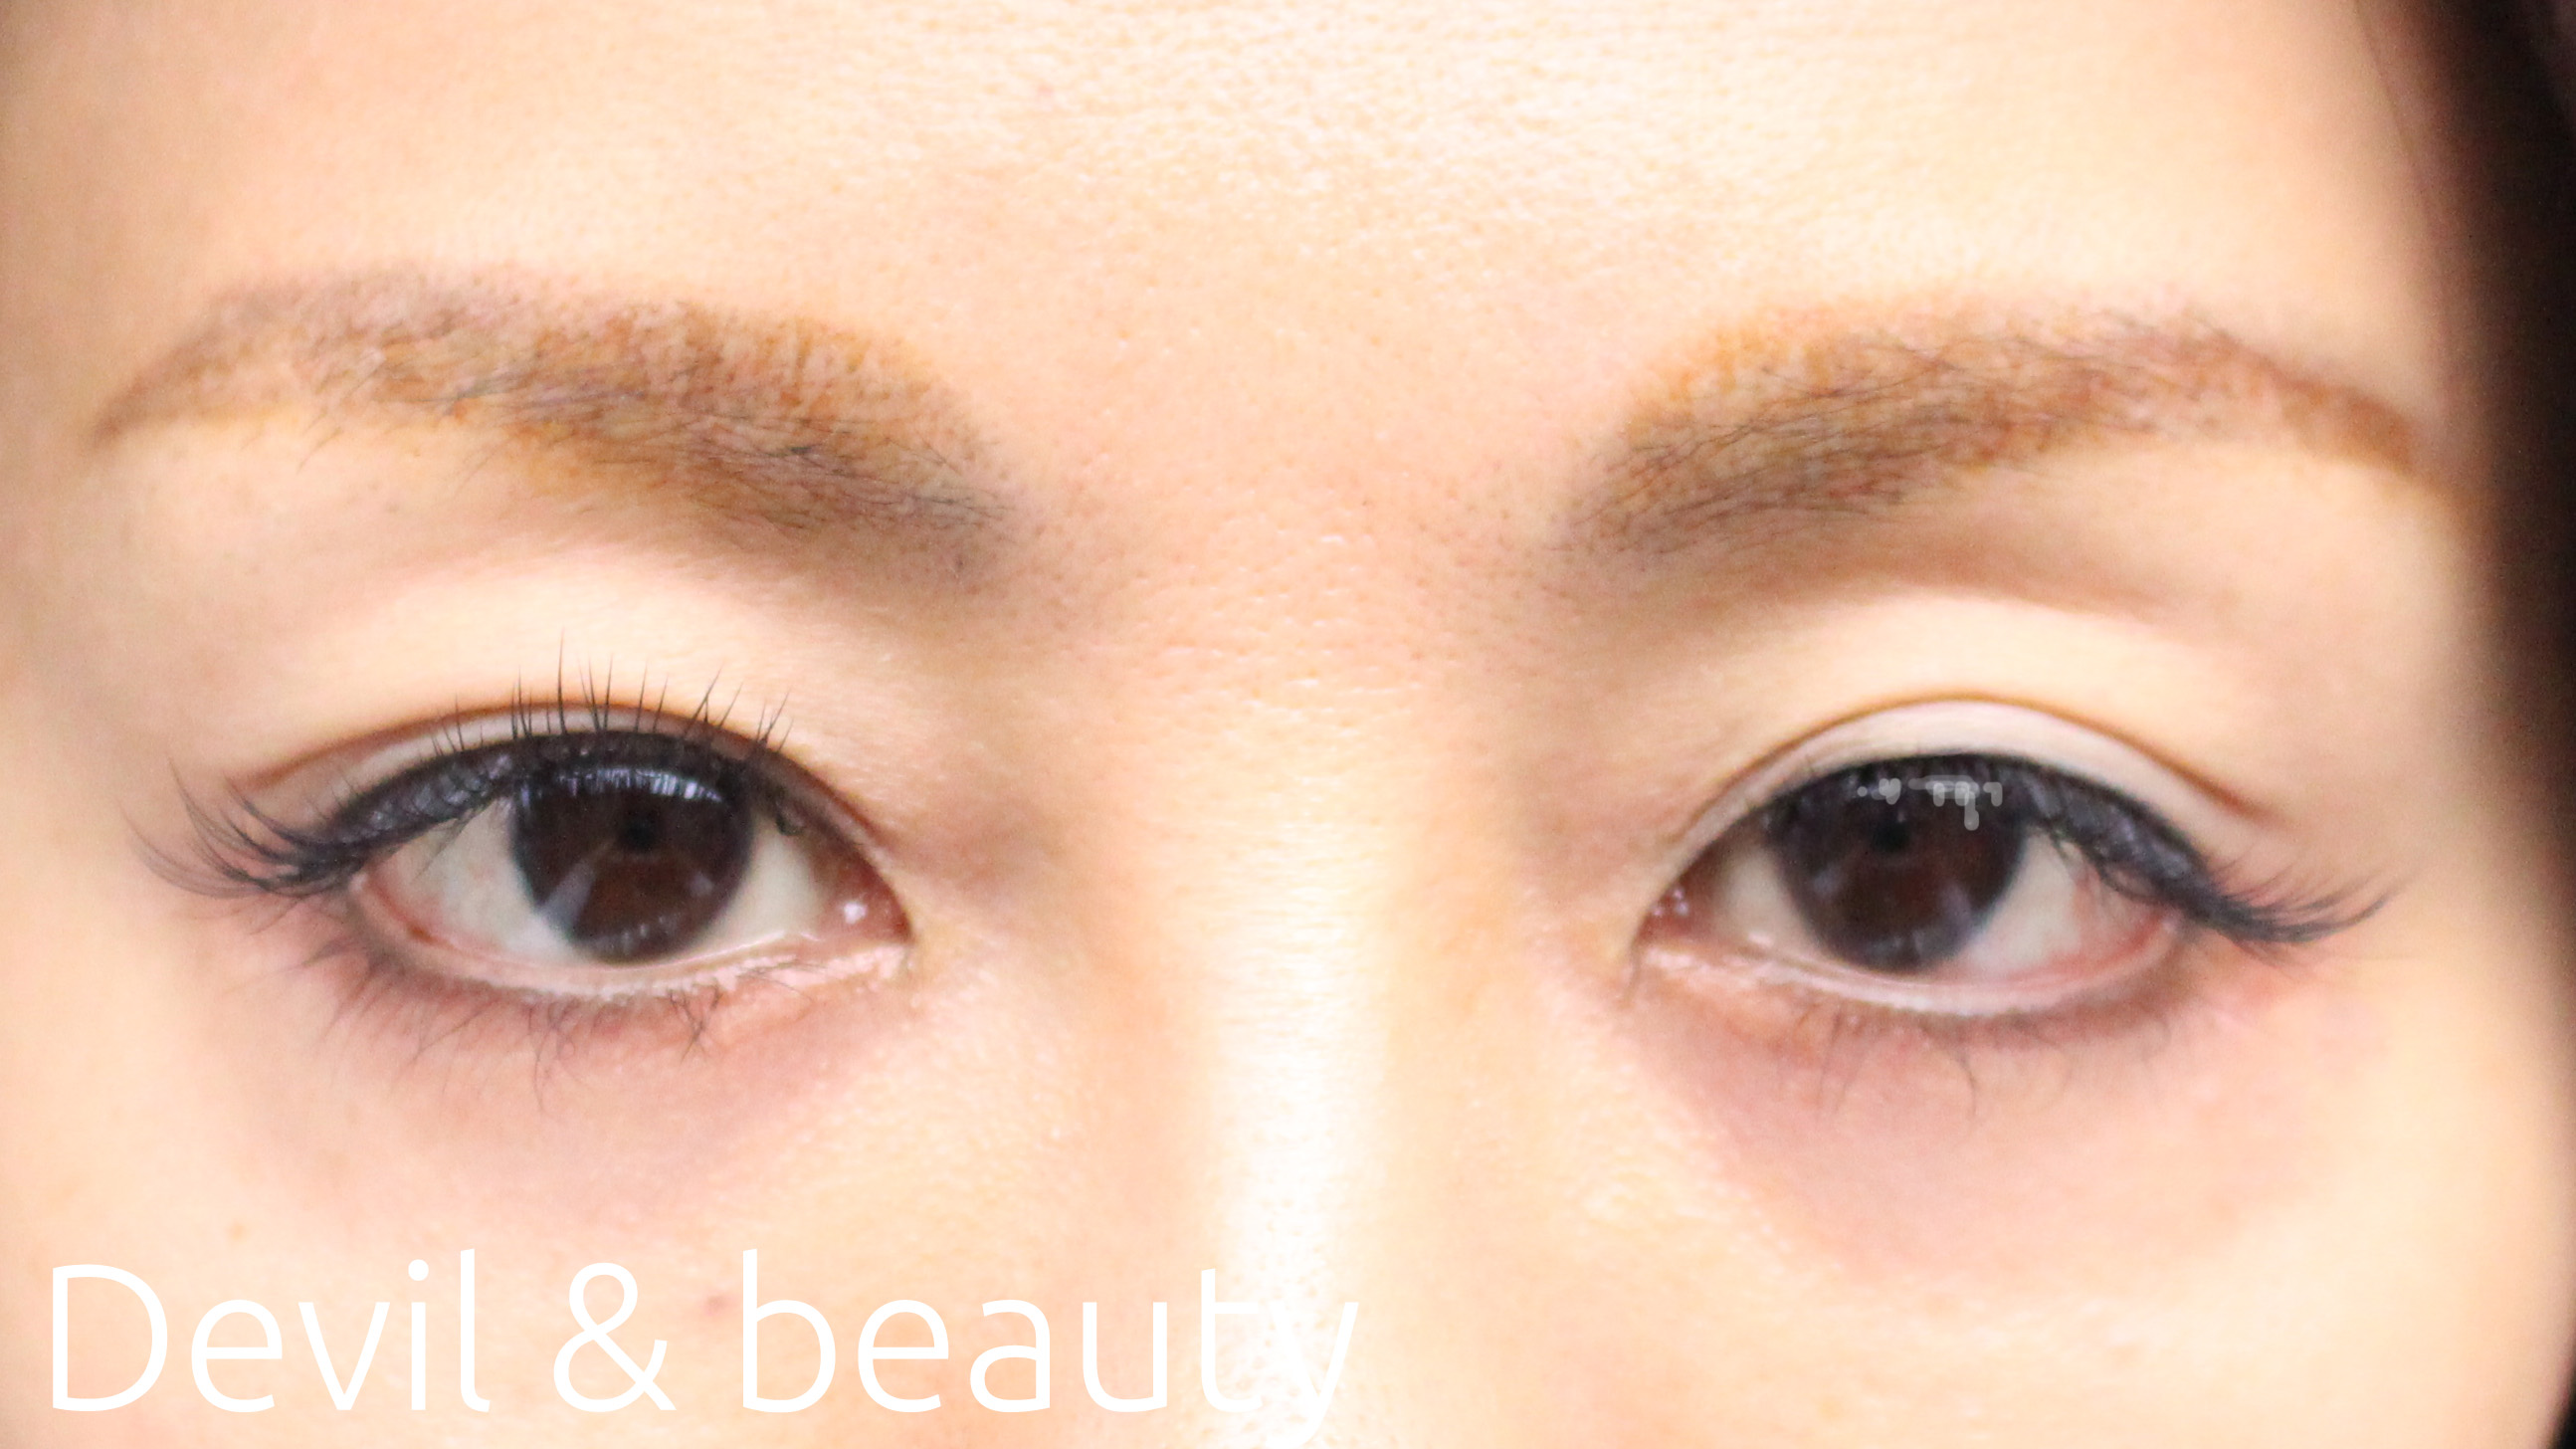 eyelash-salon-makiriya-after - image